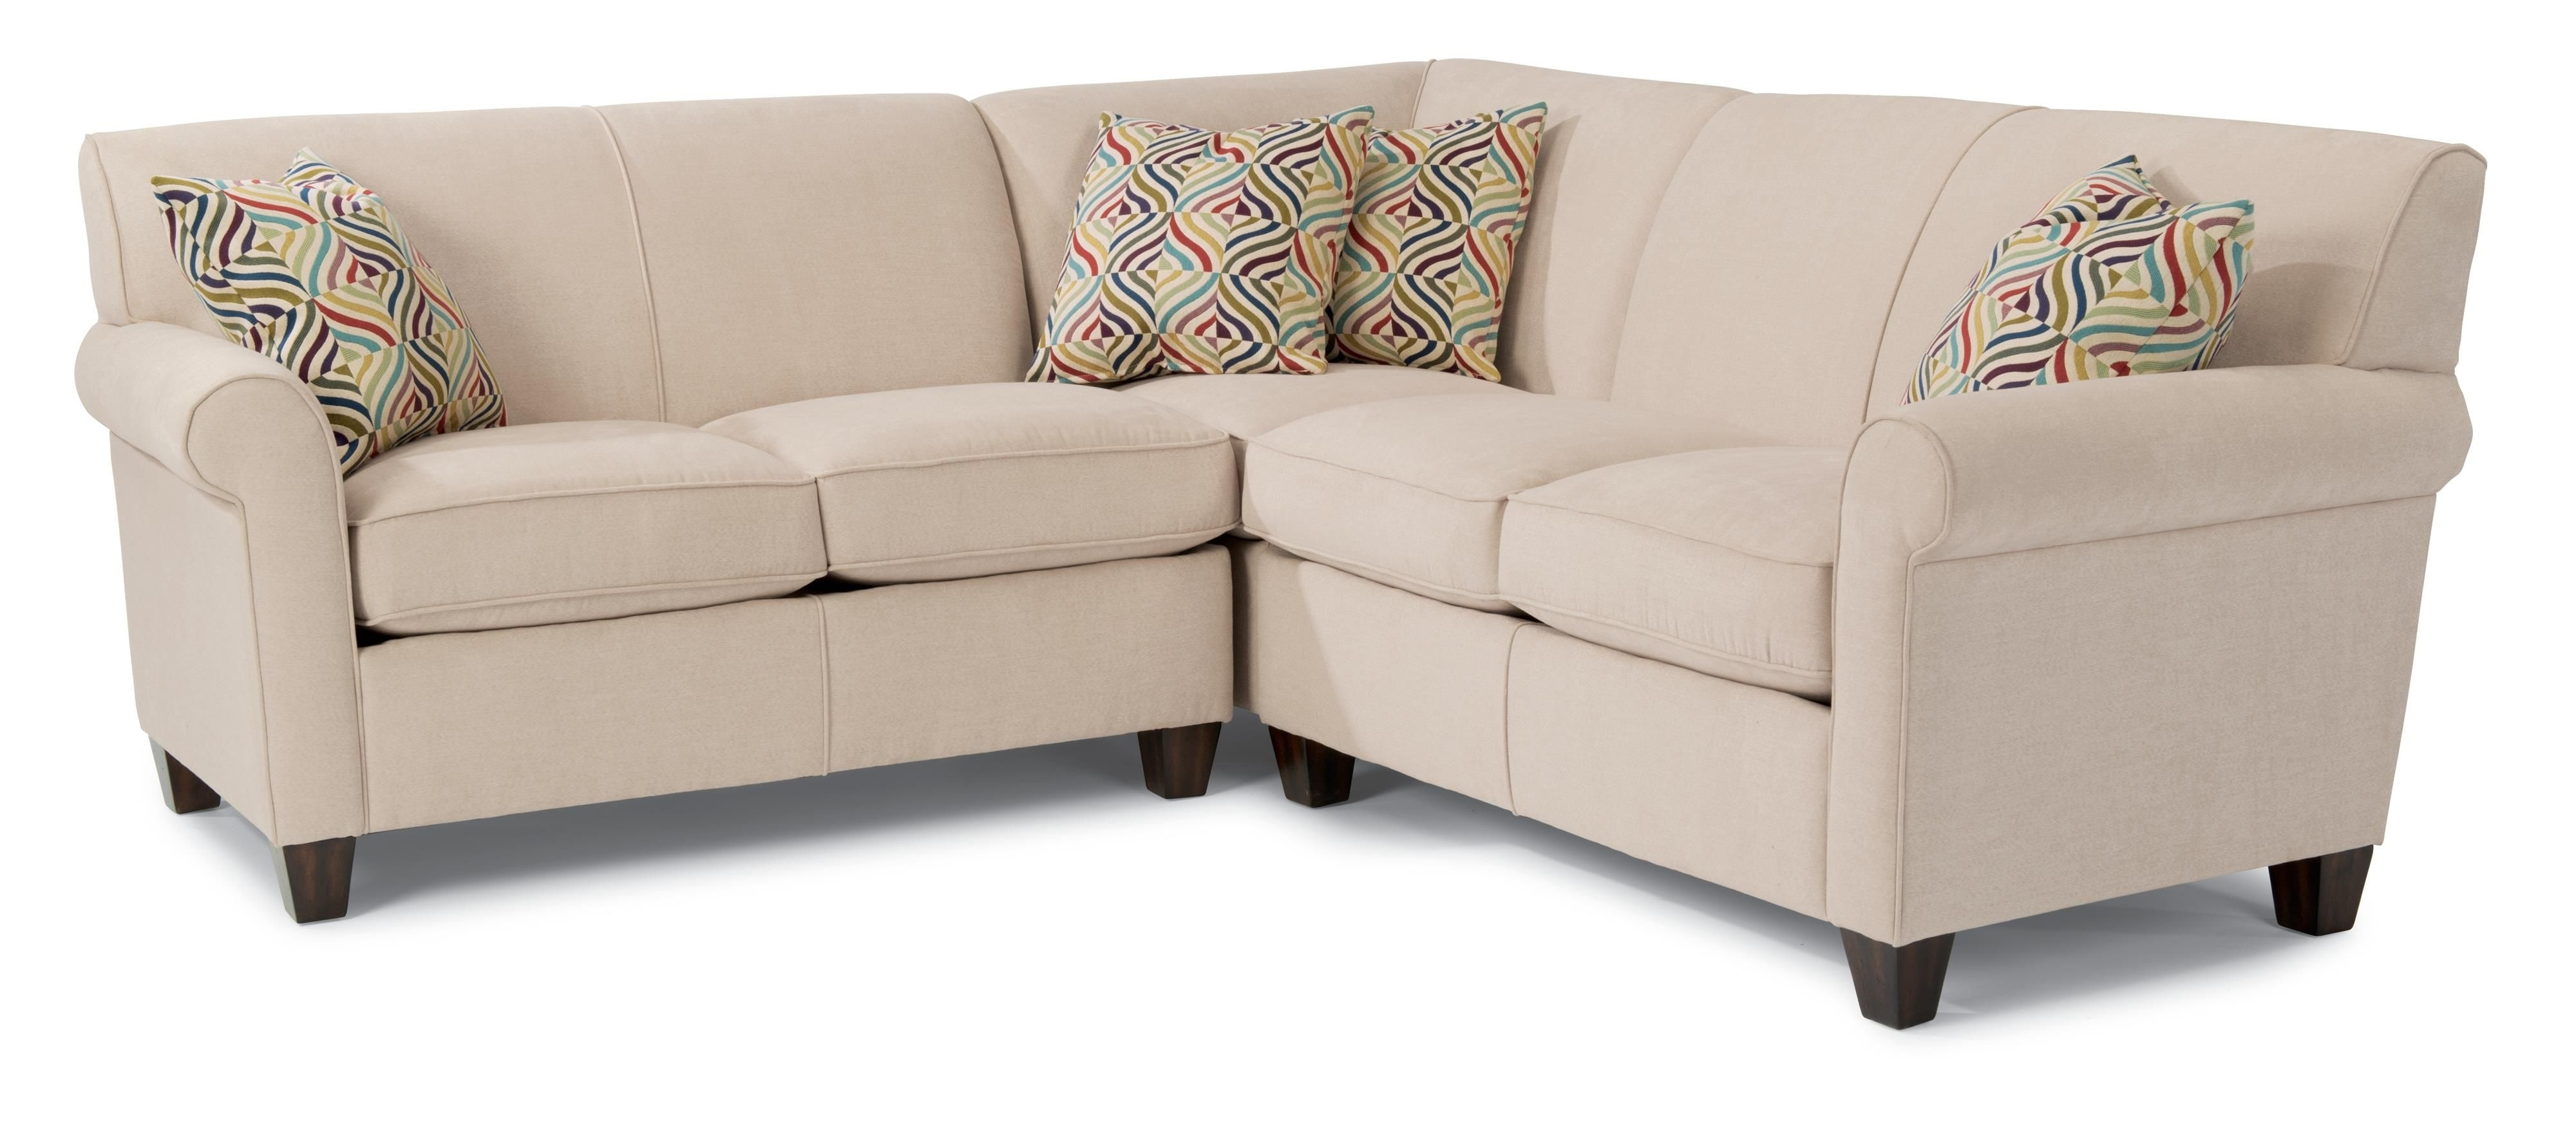 Most Recently Released Nova Scotia Sectional Sofas Throughout Dana Three Piece Corner Sectional Sofaflexsteel (View 14 of 20)